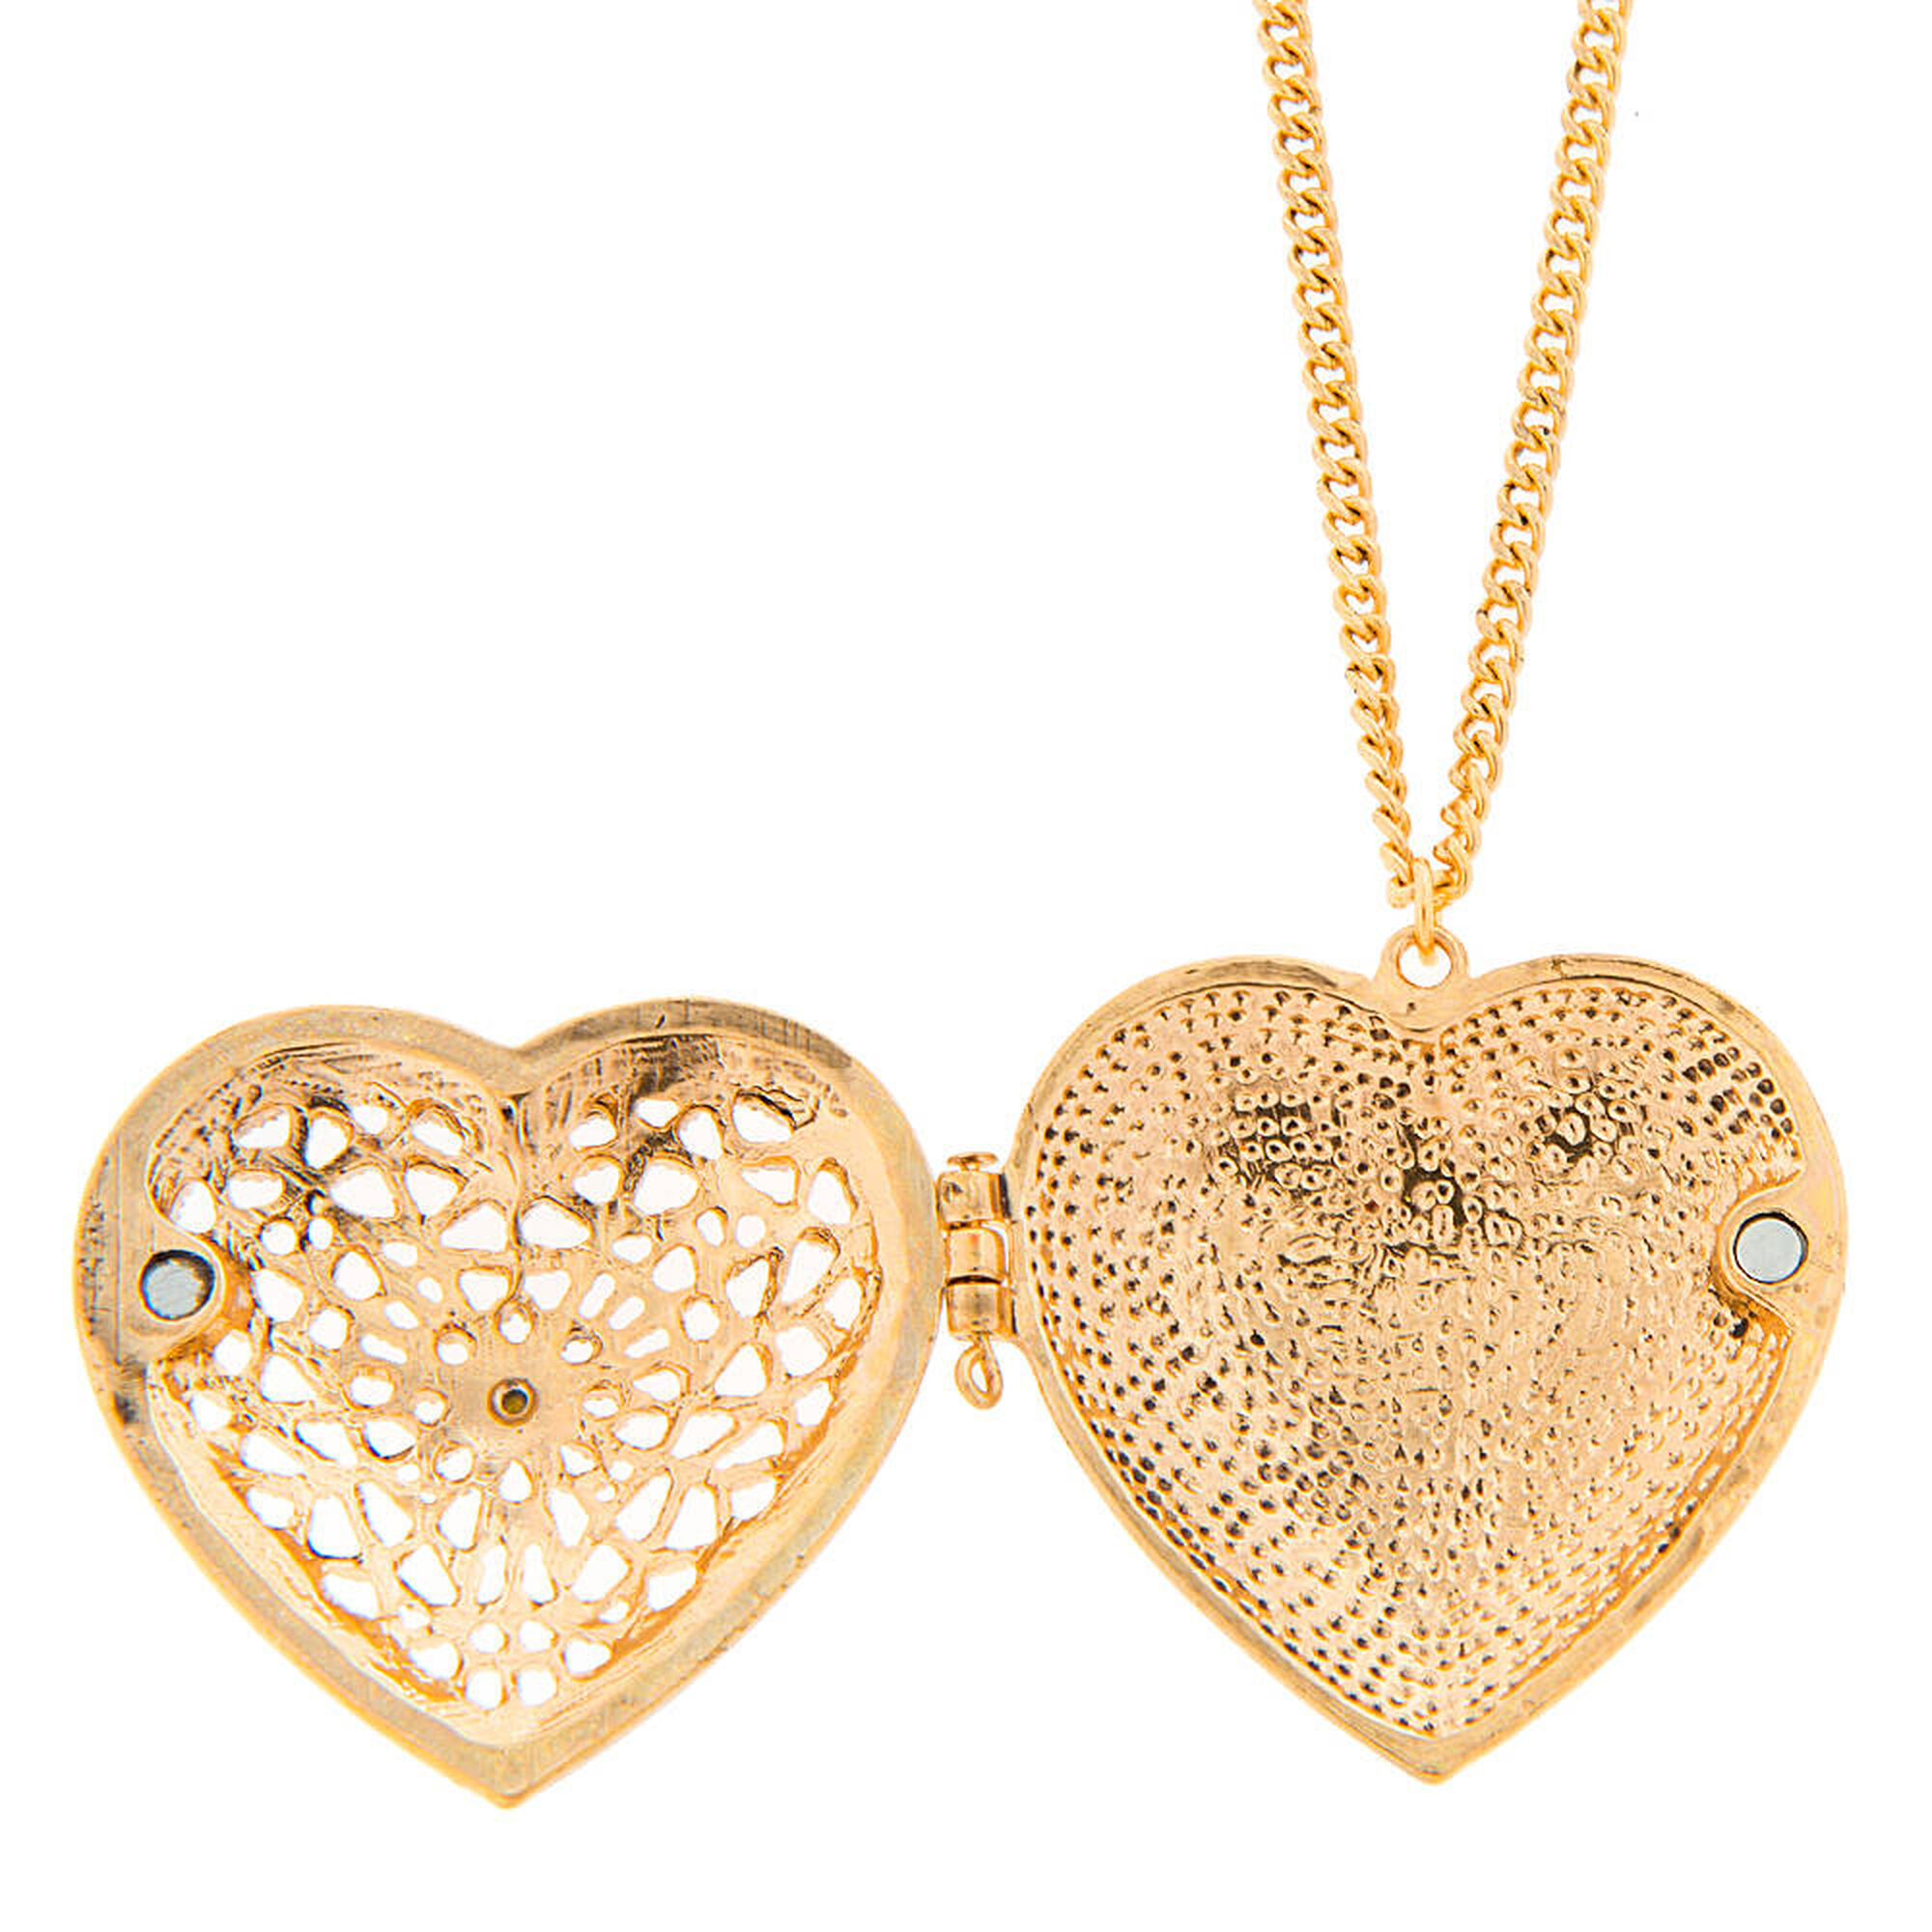 Antique gold crystal accent filigree heart locket pendant necklace antique gold crystal accent filigree heart locket pendant necklace aloadofball Images